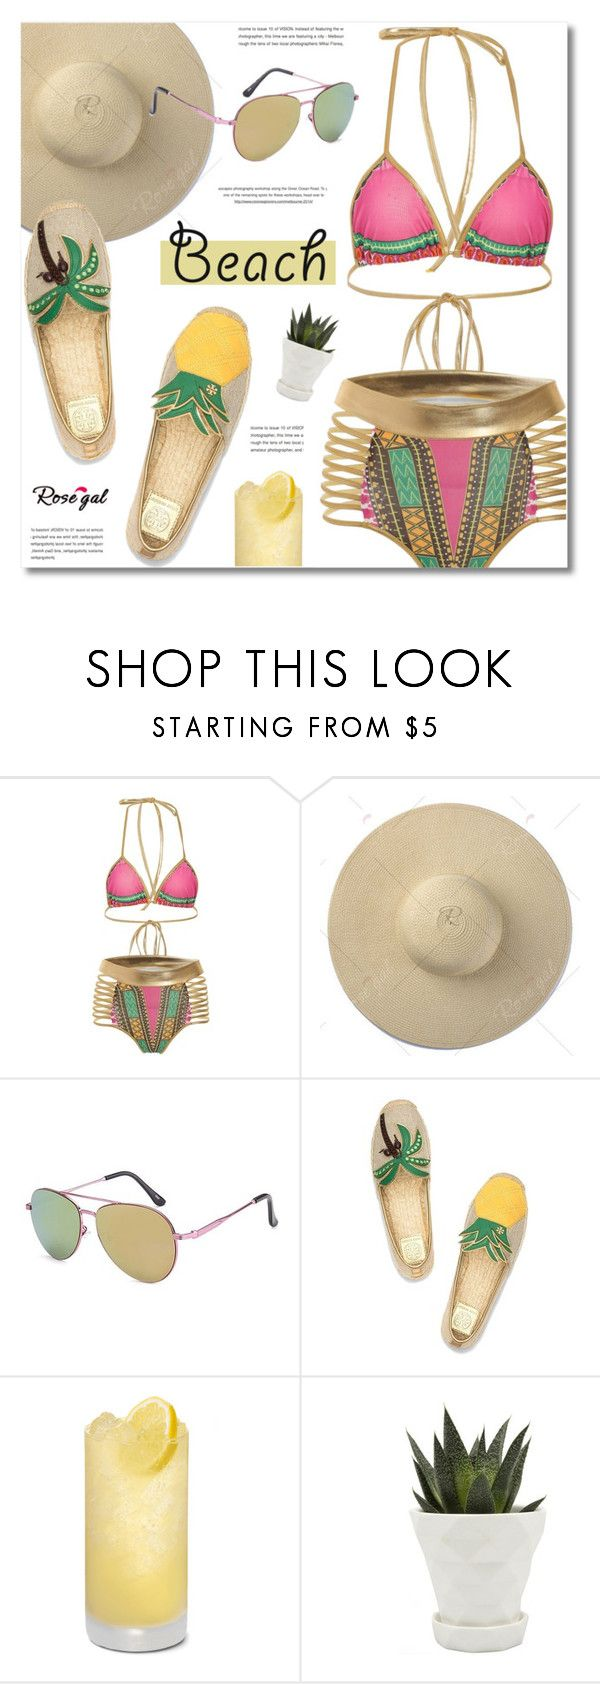 """""""Sun's Out: Beach Day; Rosegal"""" by defivirda ❤ liked on Polyvore featuring Tory Burch, Chive and beachday"""